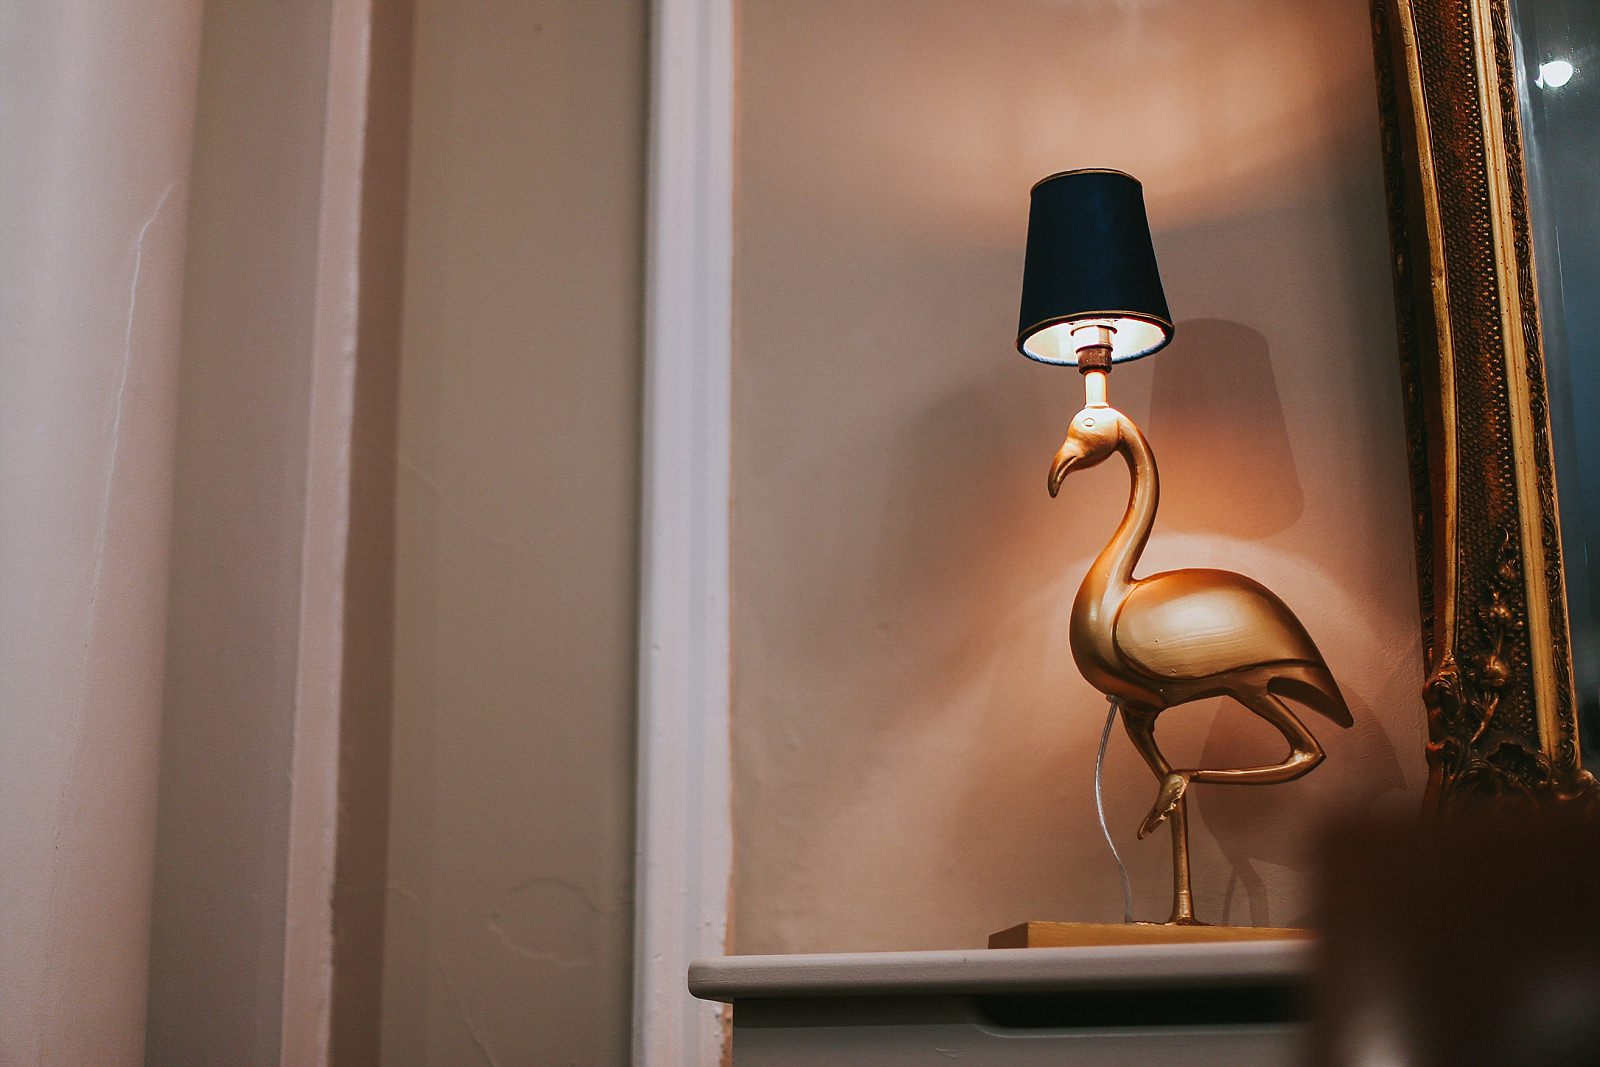 Gold flamingo lampshade in a hallway